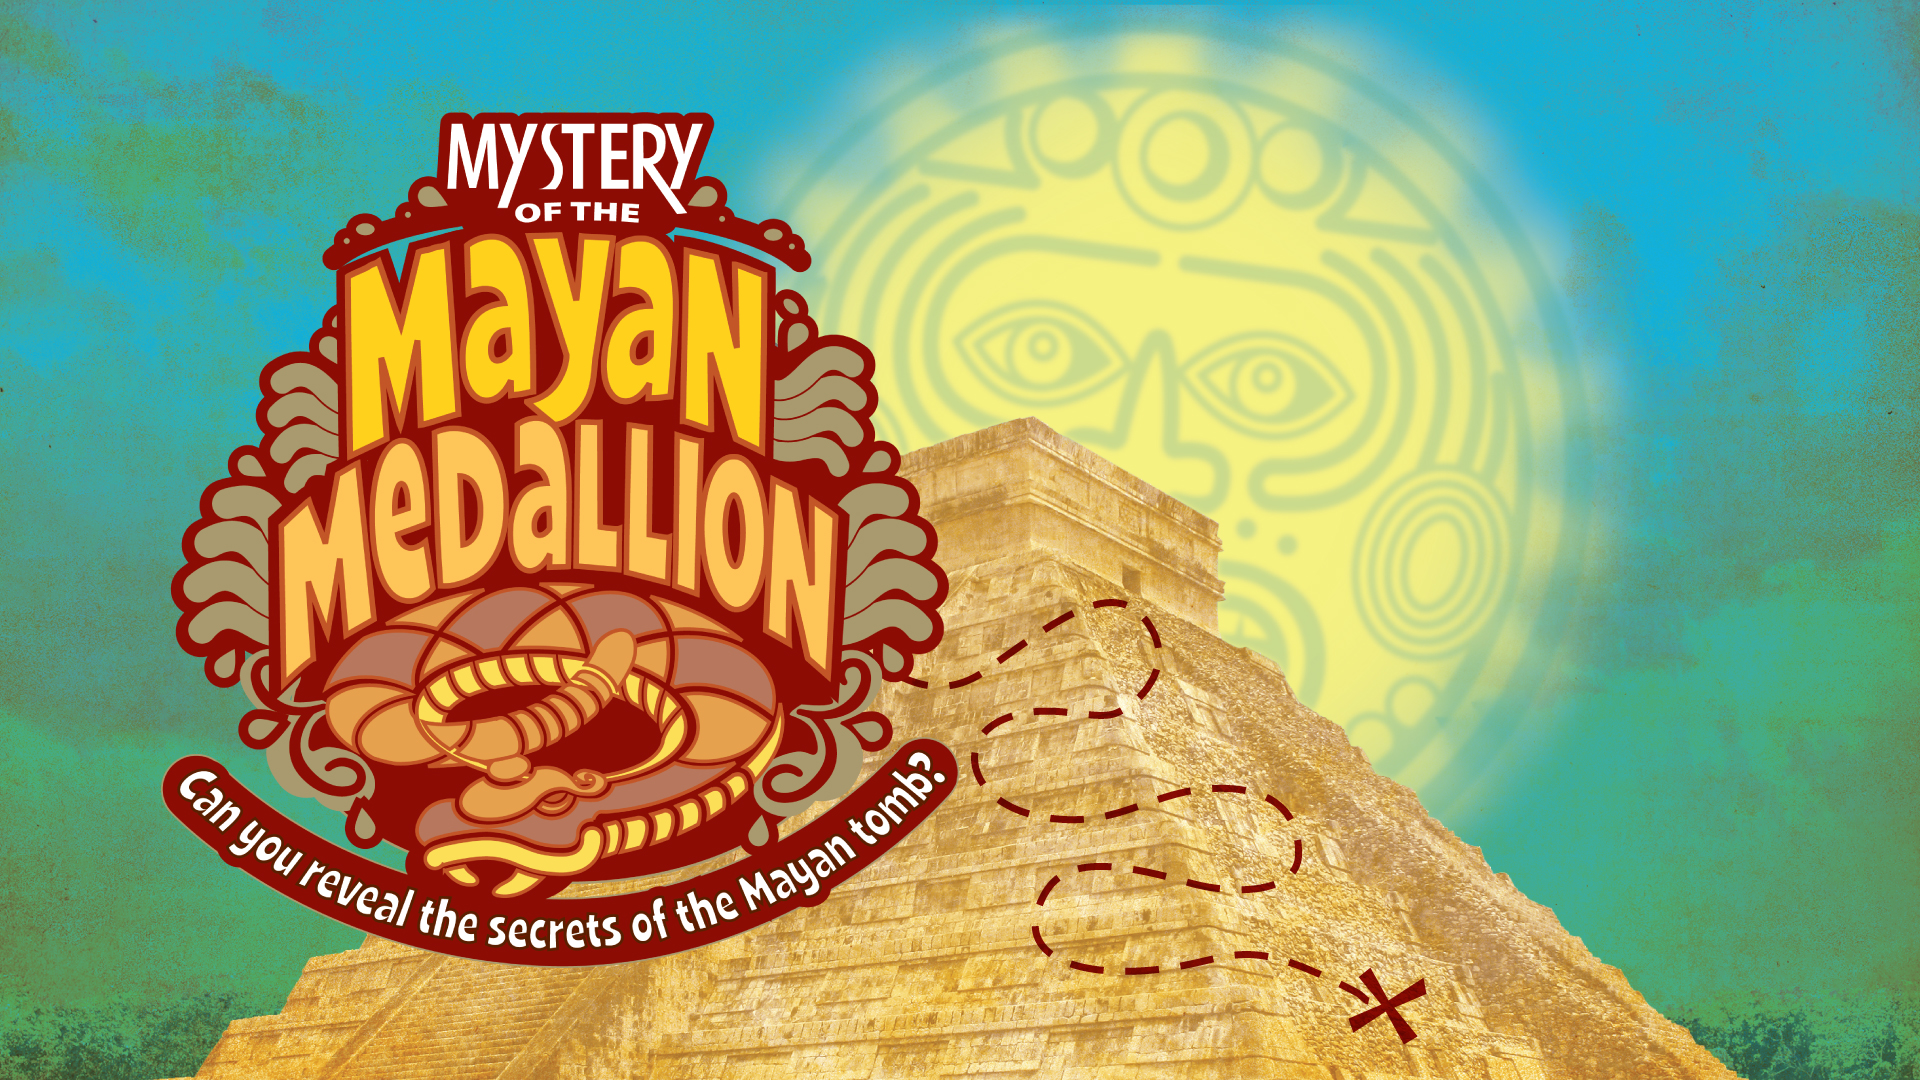 Mystery of the Mayan Medallion - Now - Jan 12, 2020